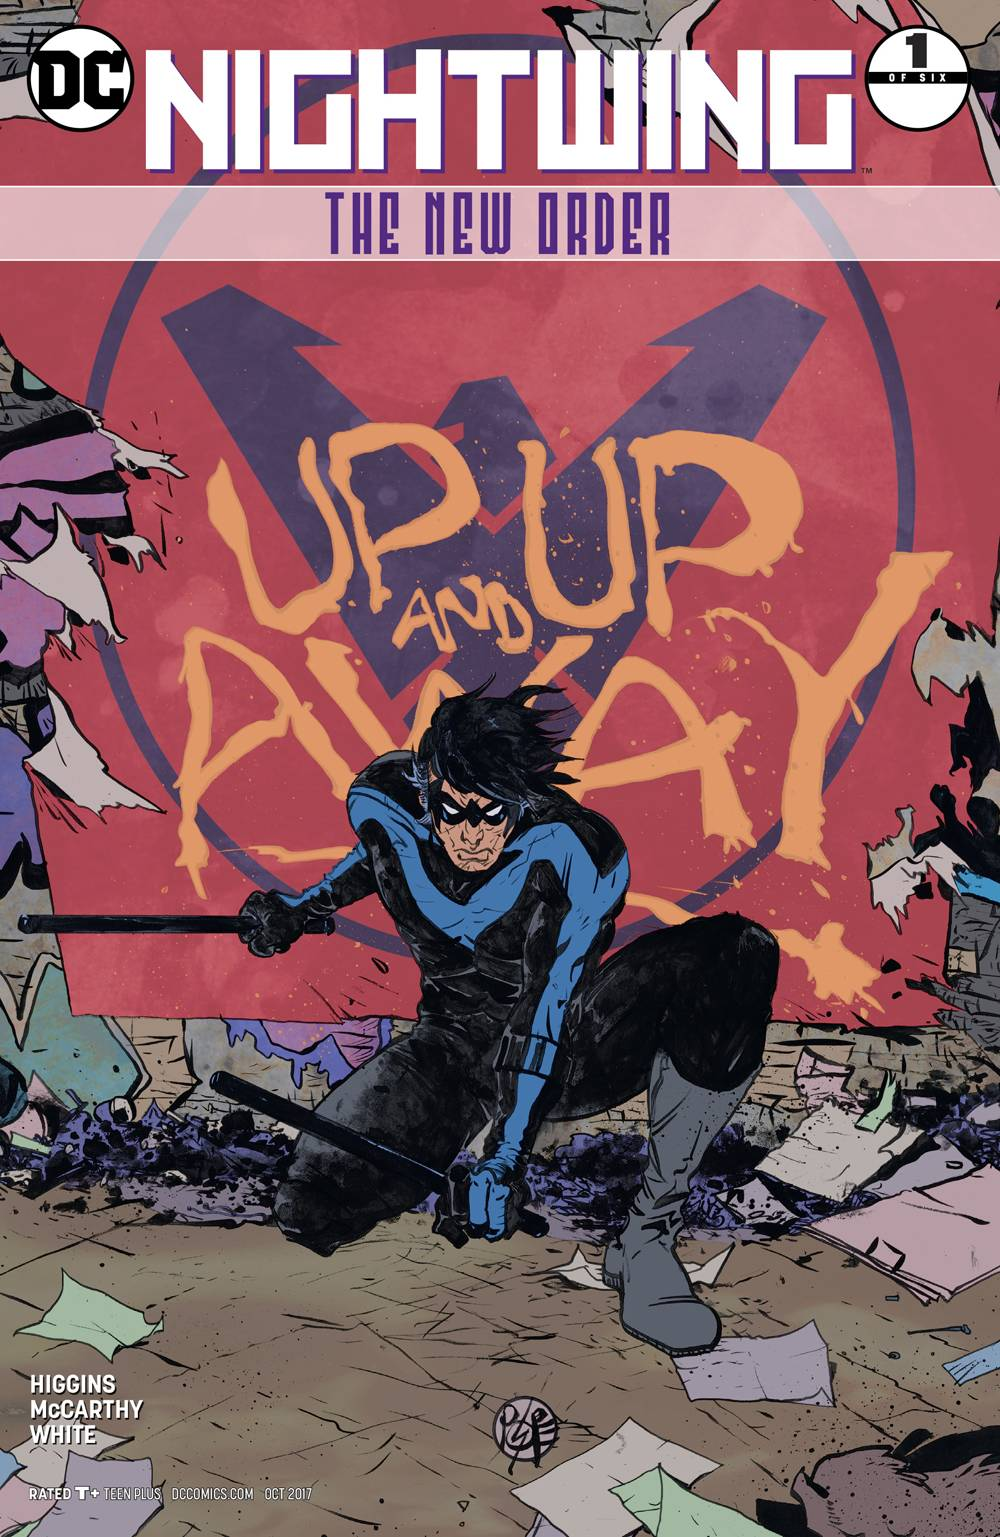 NIGHTWING THE NEW ORDER 1 of 6 VAR ED.jpg